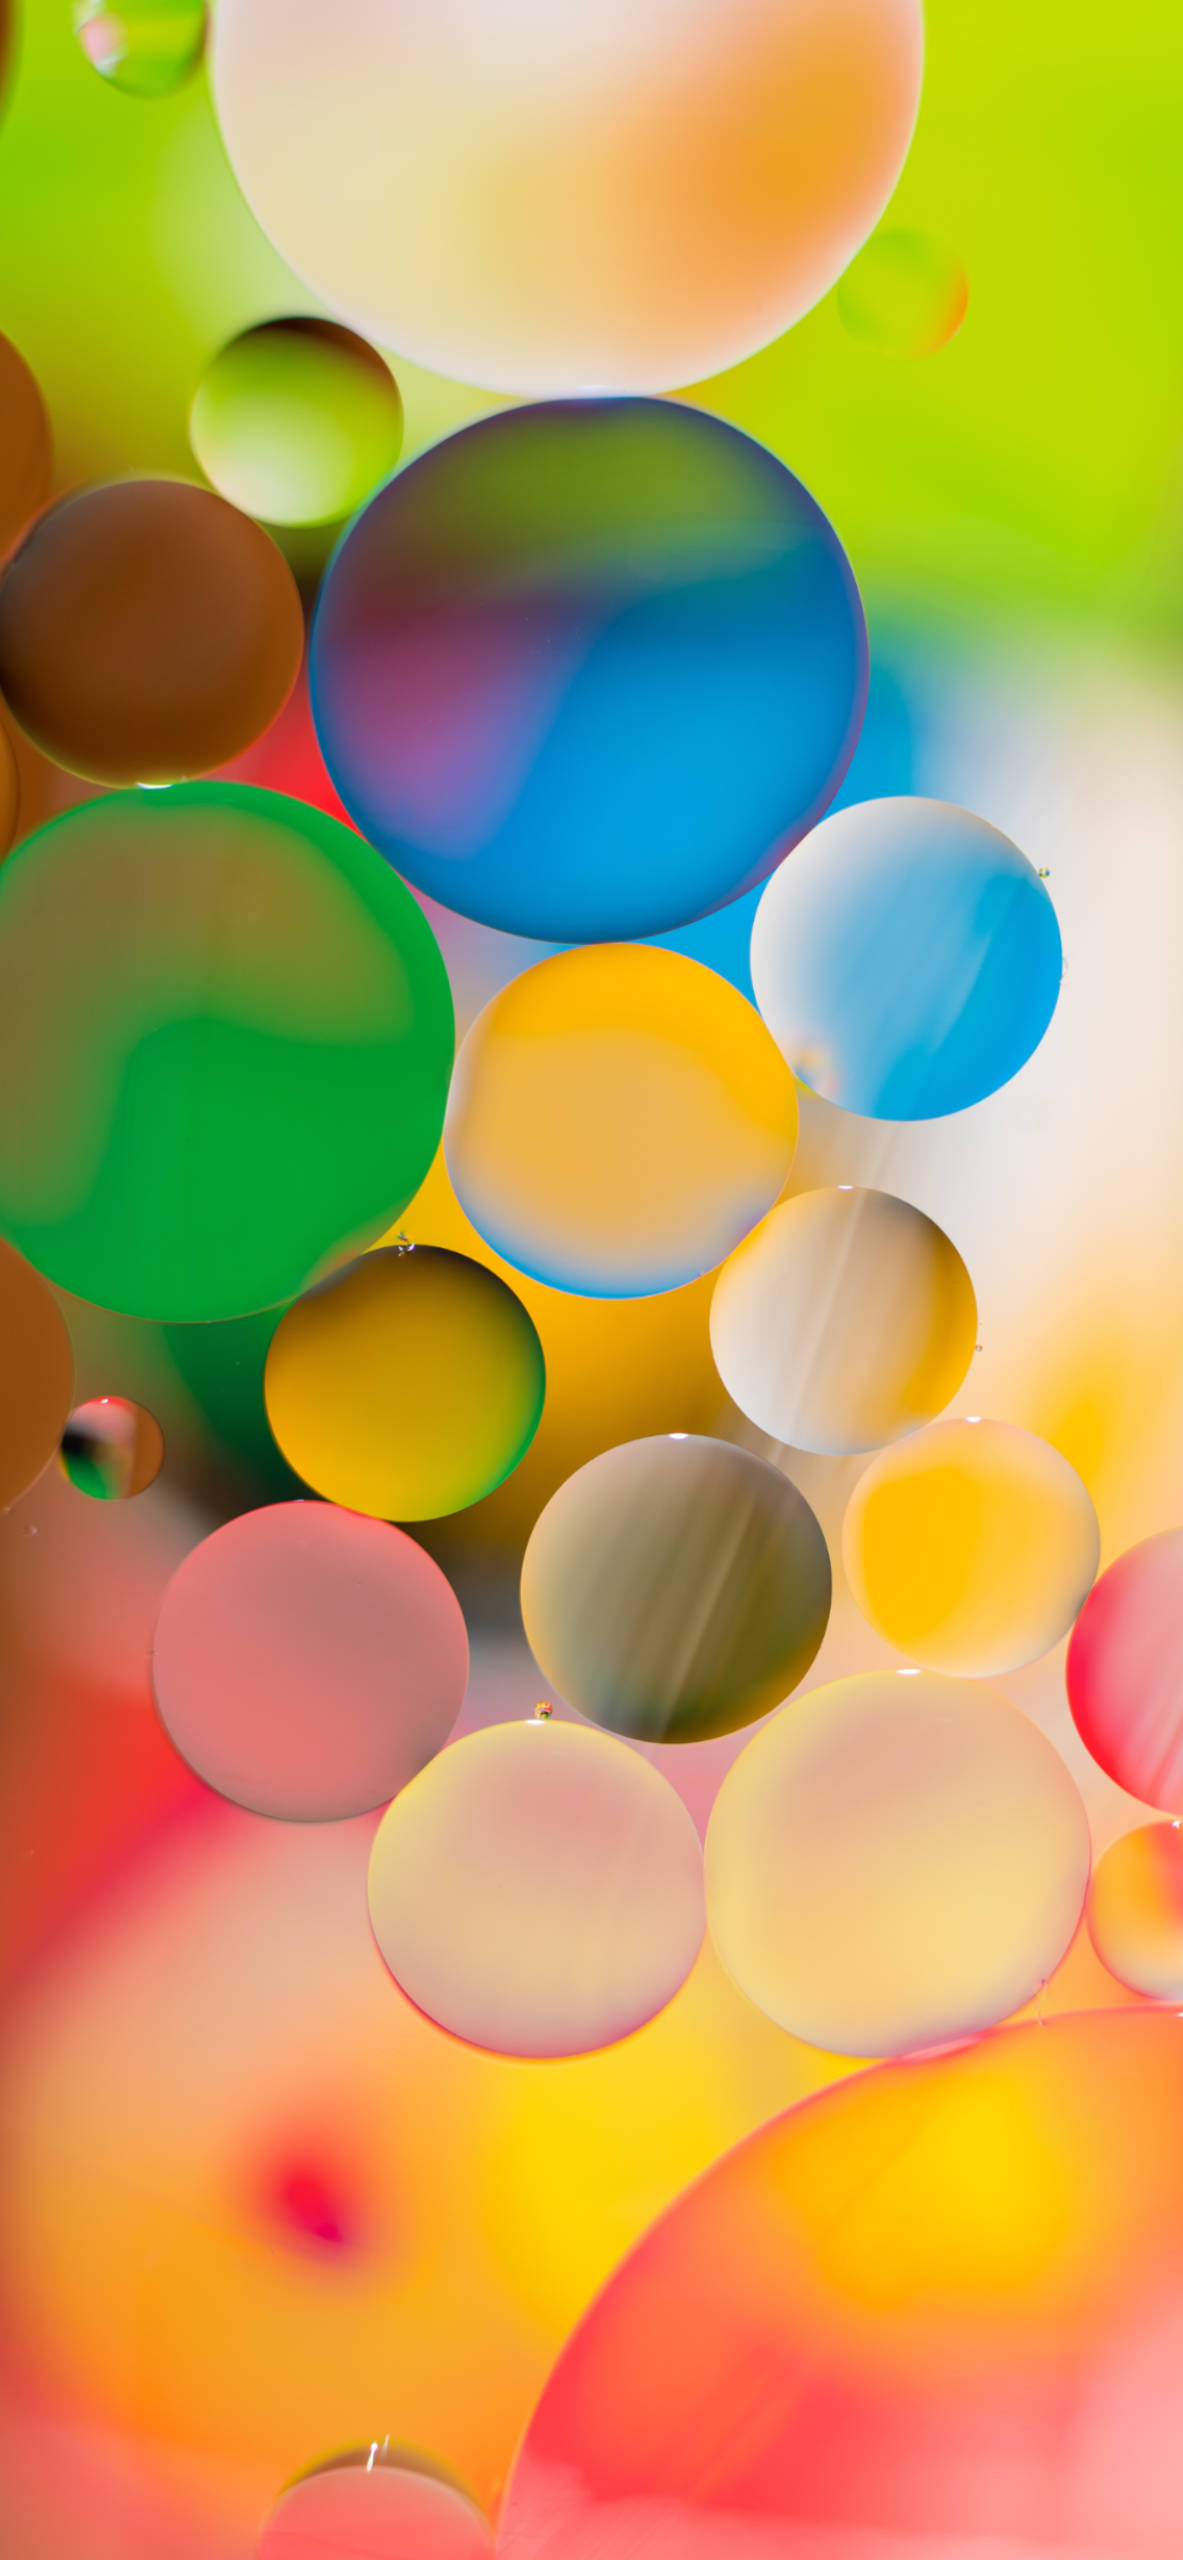 iPhone wallpapers abstract balls colors Abastract